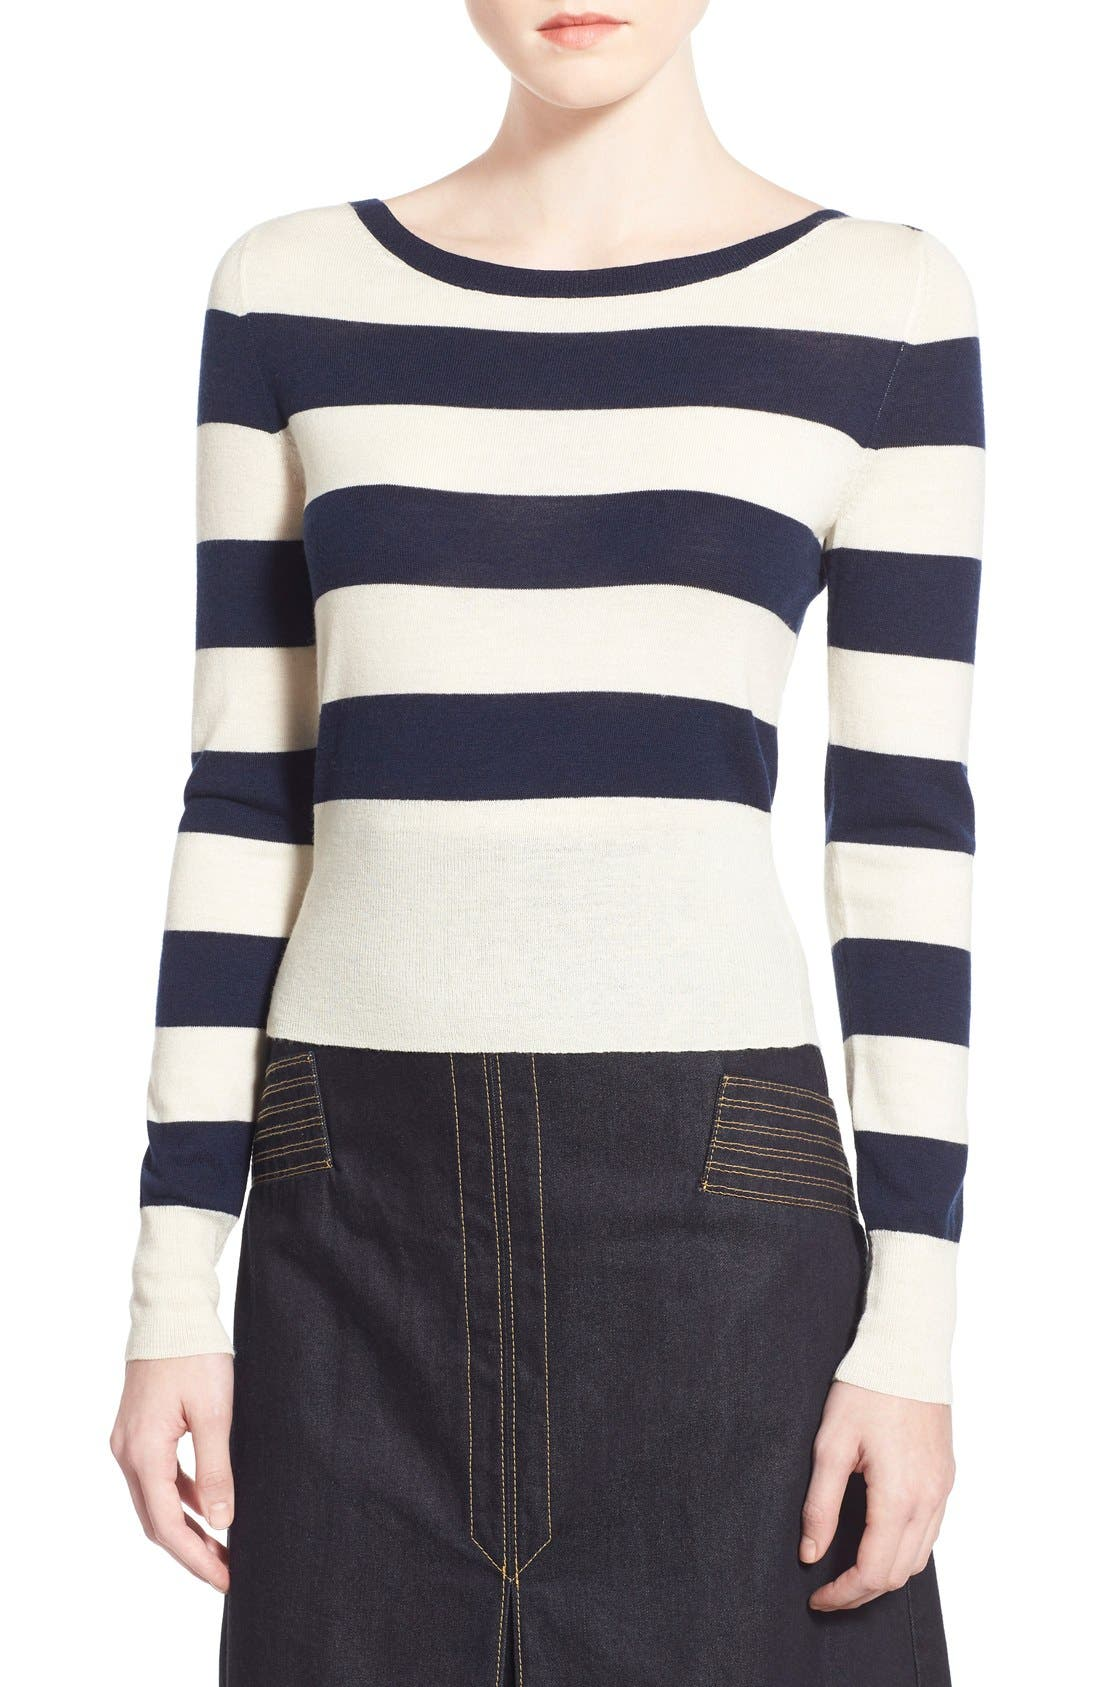 Alternate Image 1 Selected - Olivia Palermo + Chelsea28 Stripe Wool & Cashmere Pullover